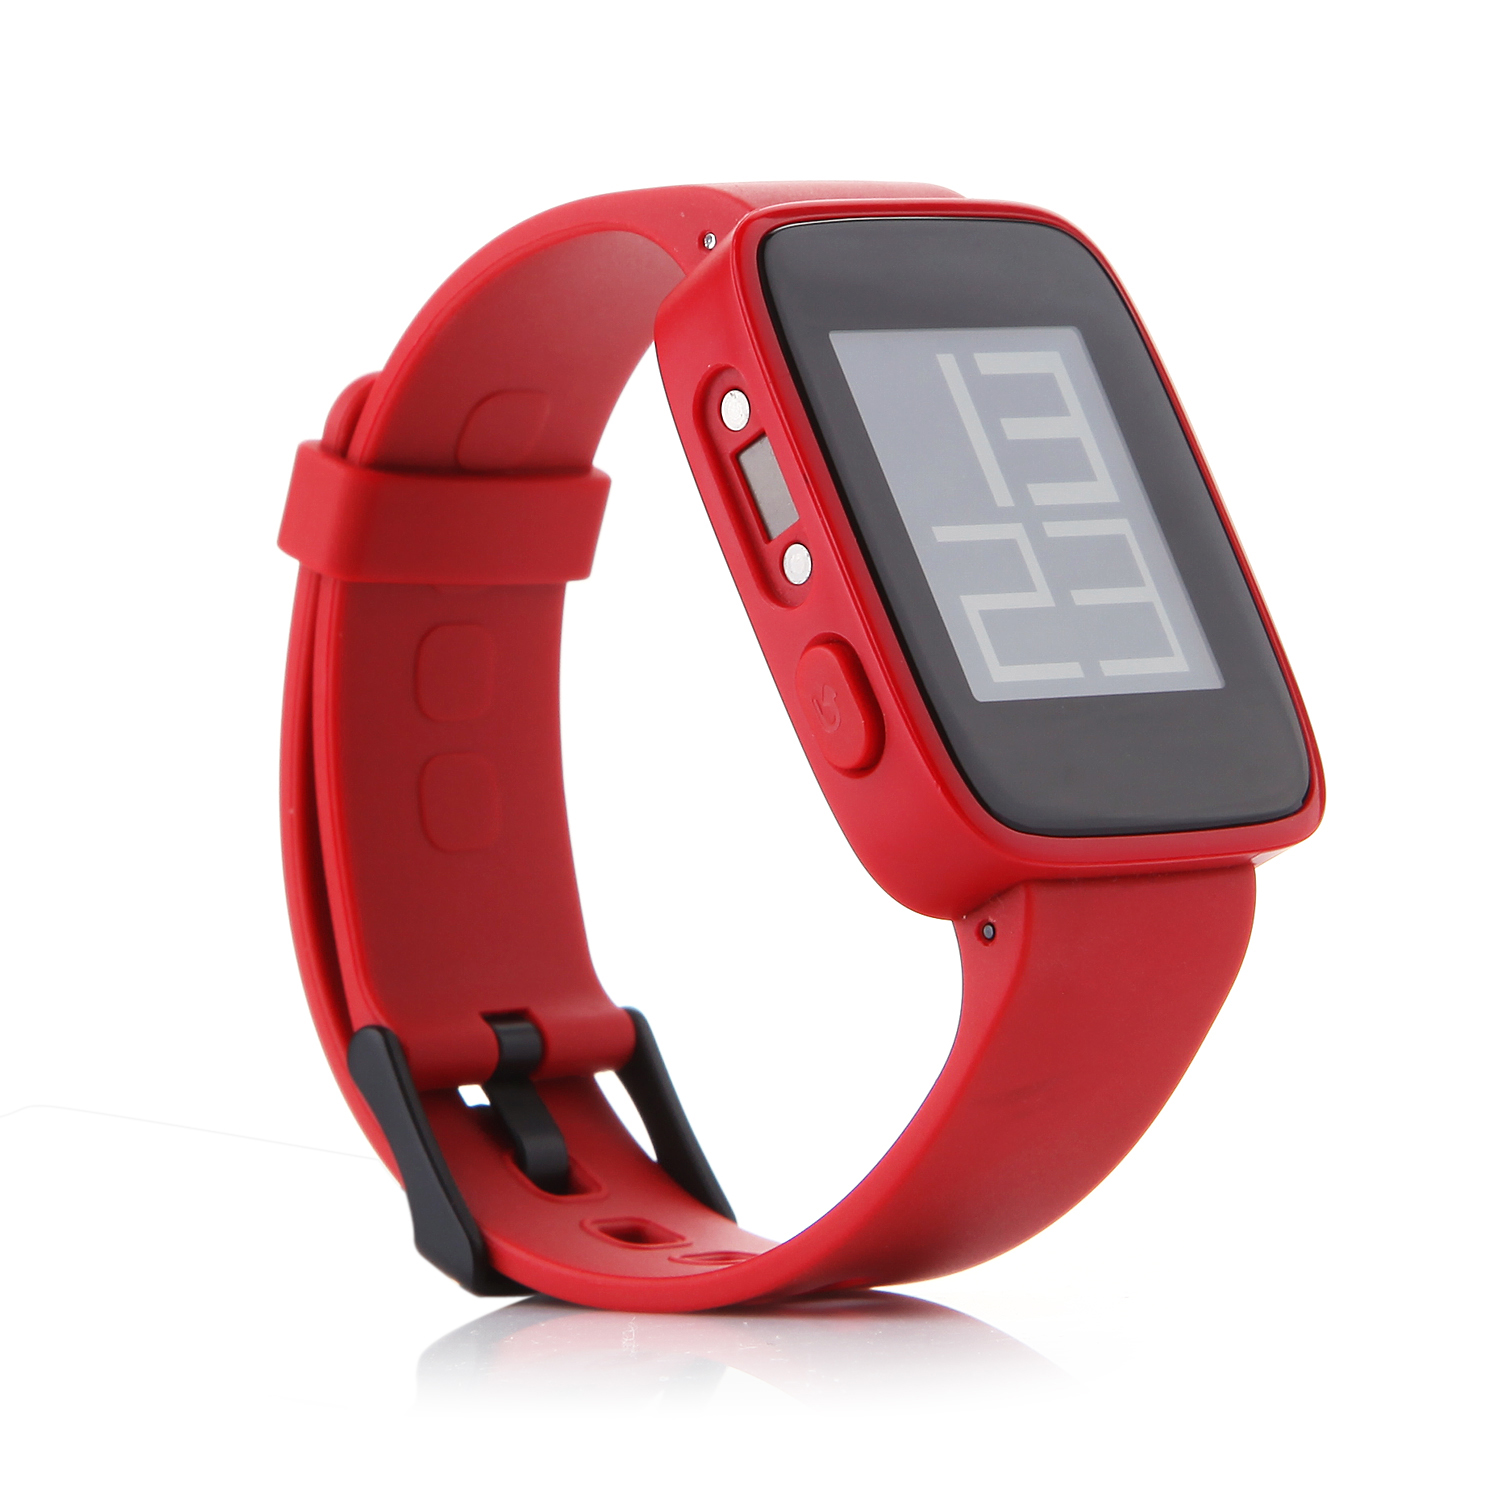 "WeLoop Tommy 1.26"" LCD Smart Watch w/ Bluetooth 4.0 Support Message Display -Red"